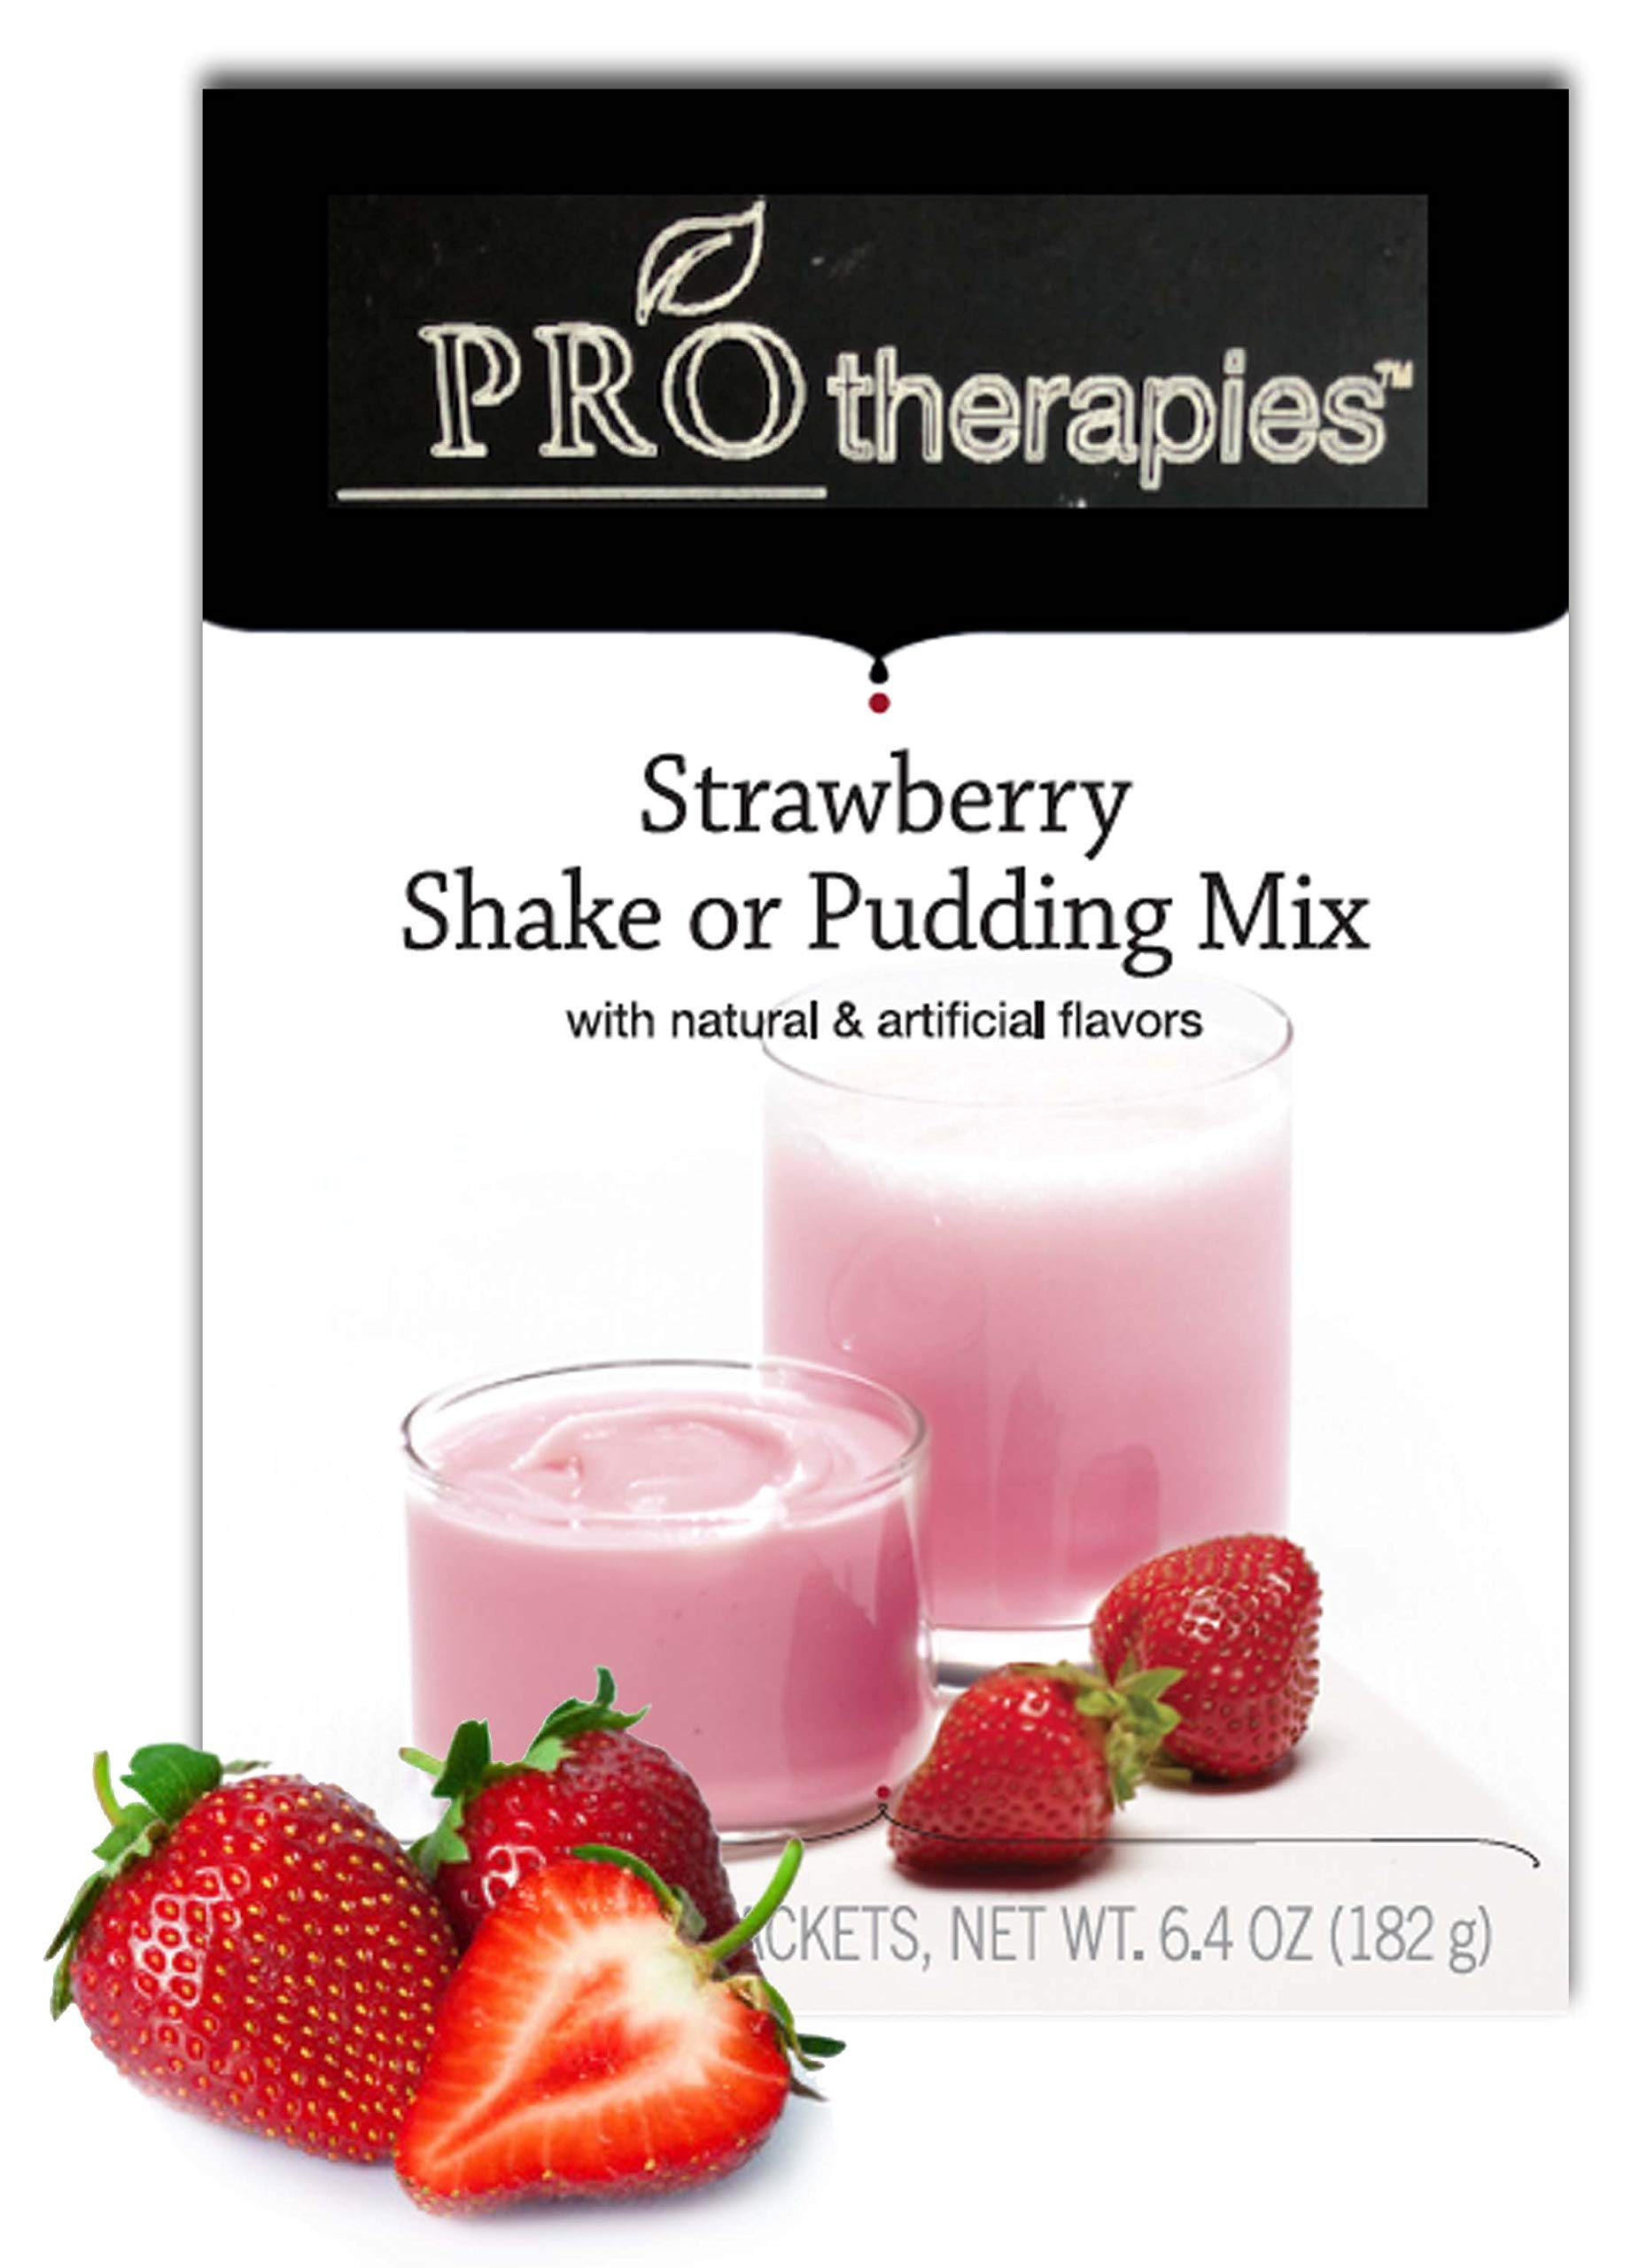 High Protein Pudding Mix - Strawberry Low-Carb Instant Diet Pudding Mix, Low Calorie Weight Loss Shake/Pudding, 7 Count